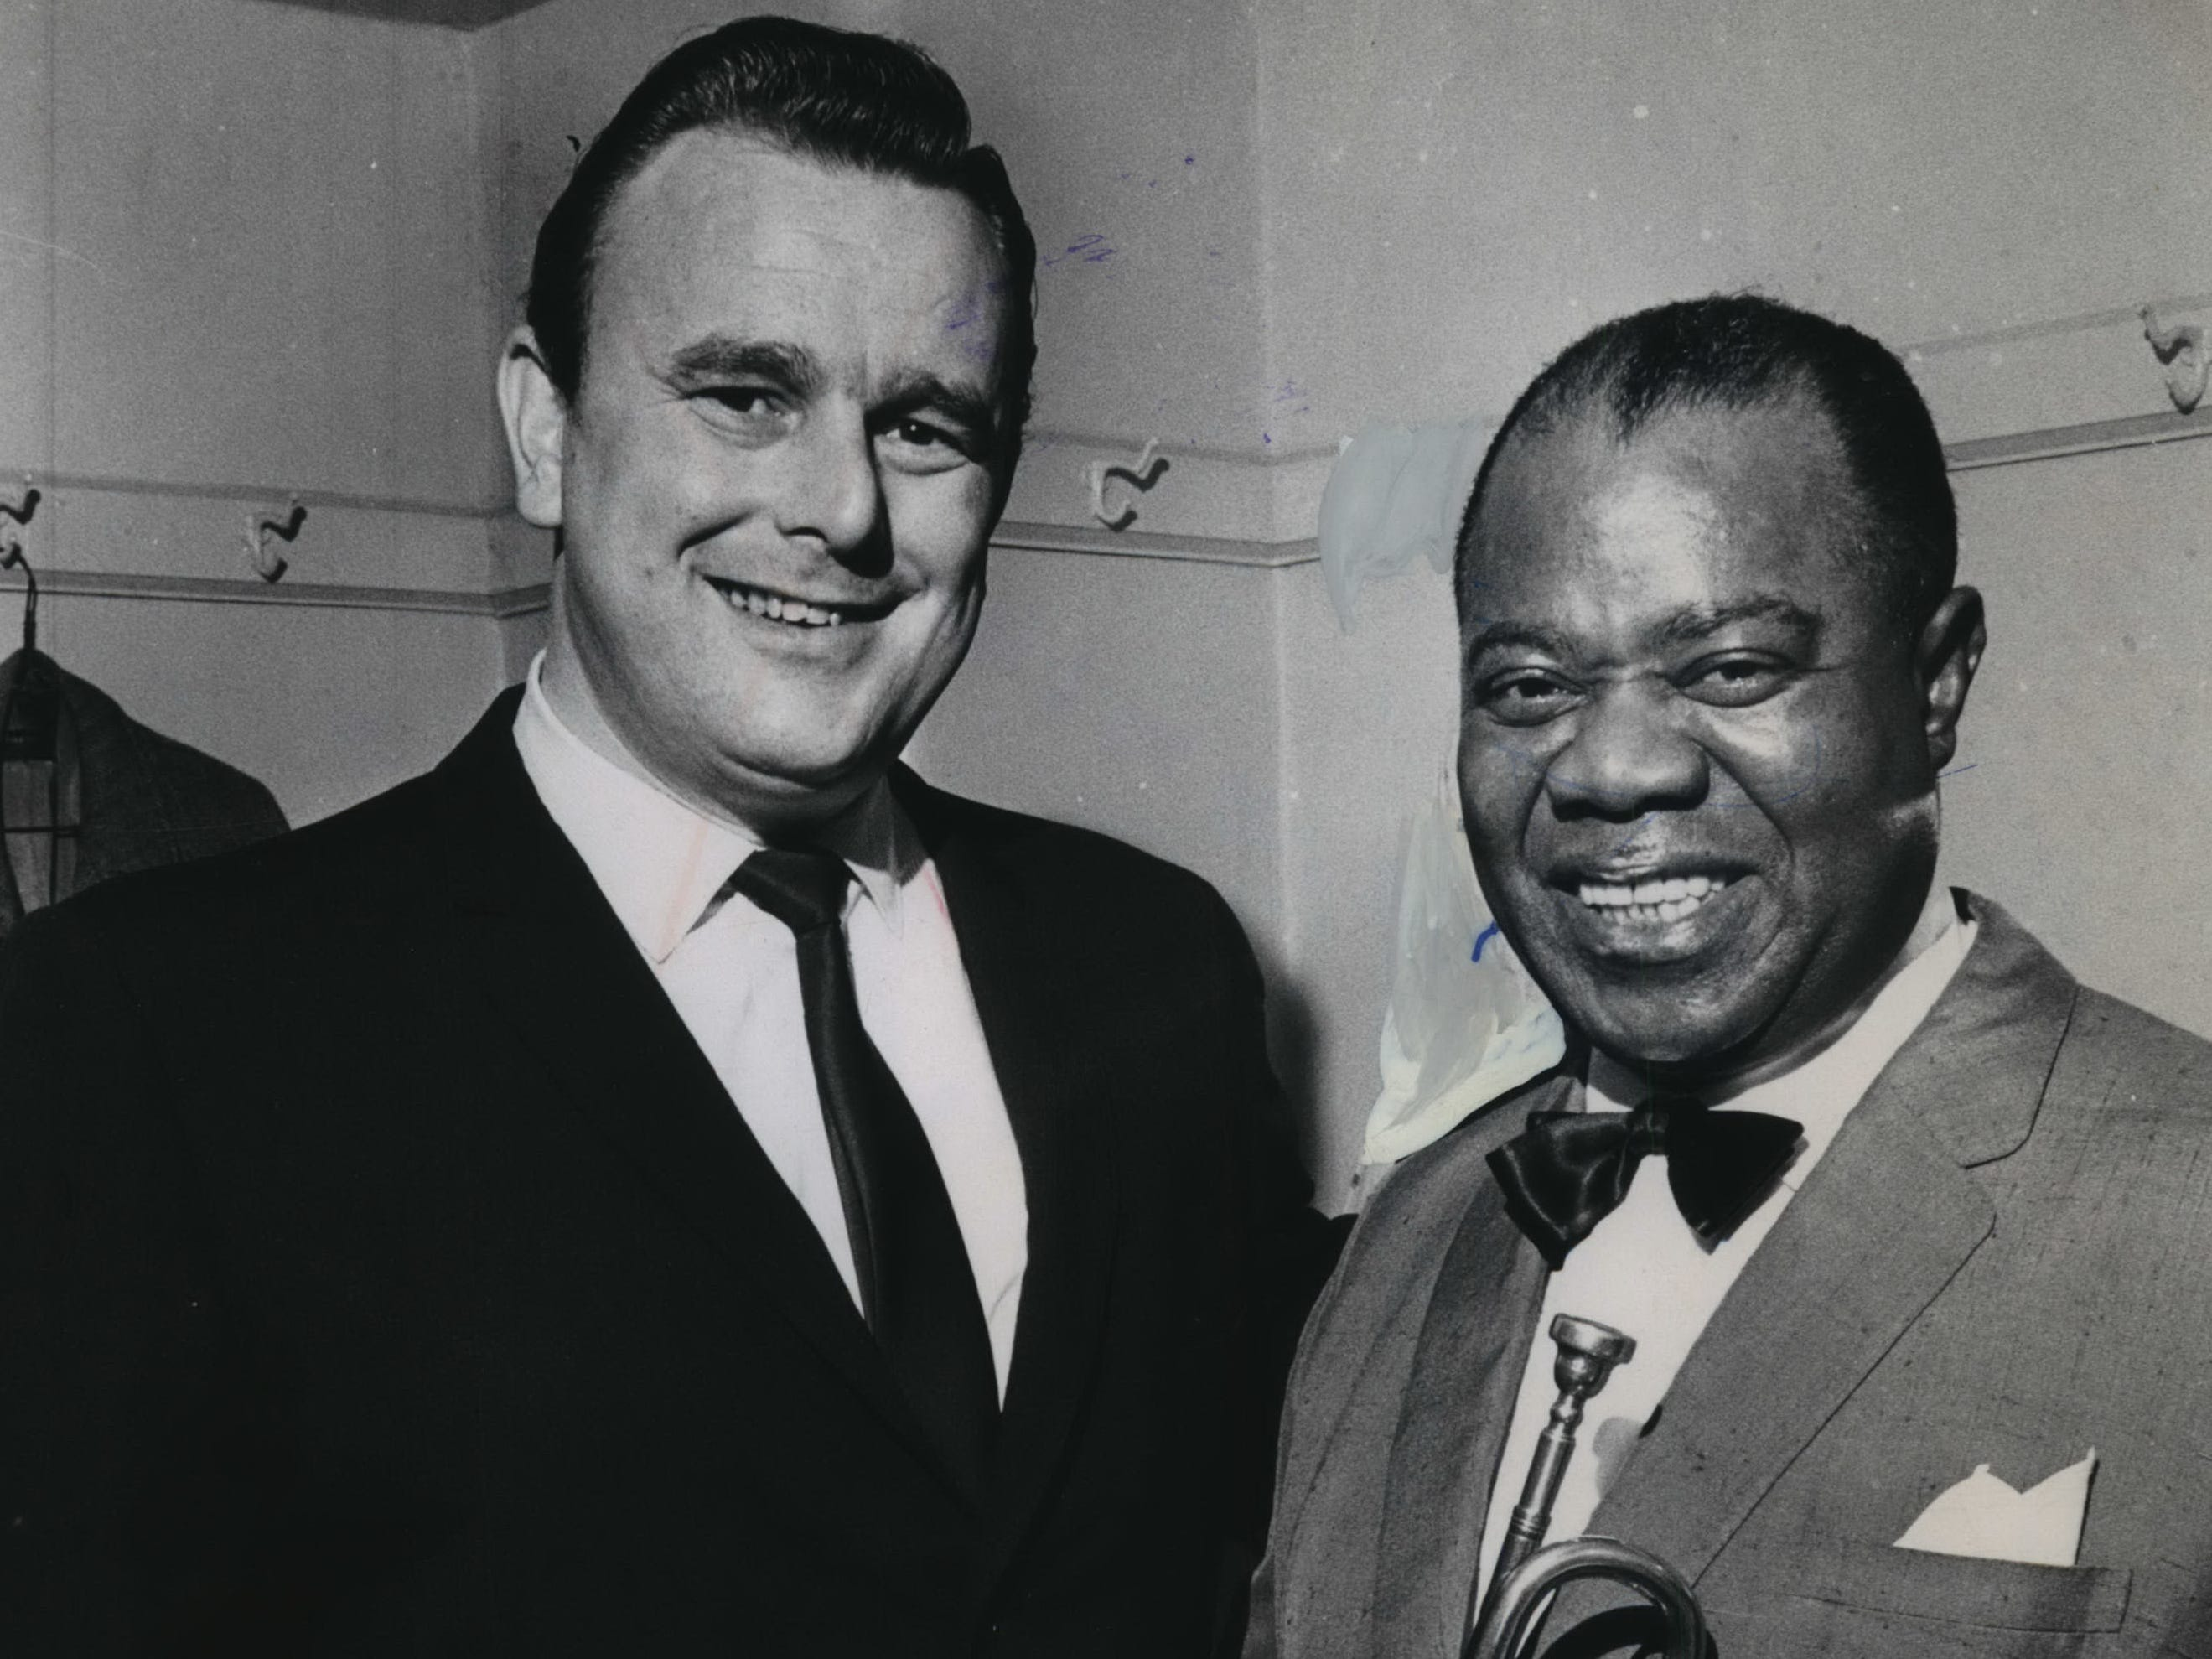 Louis Armstrong (right) pose with Bob Knudsen backstage at the Milwaukee Auditorium in 1964.